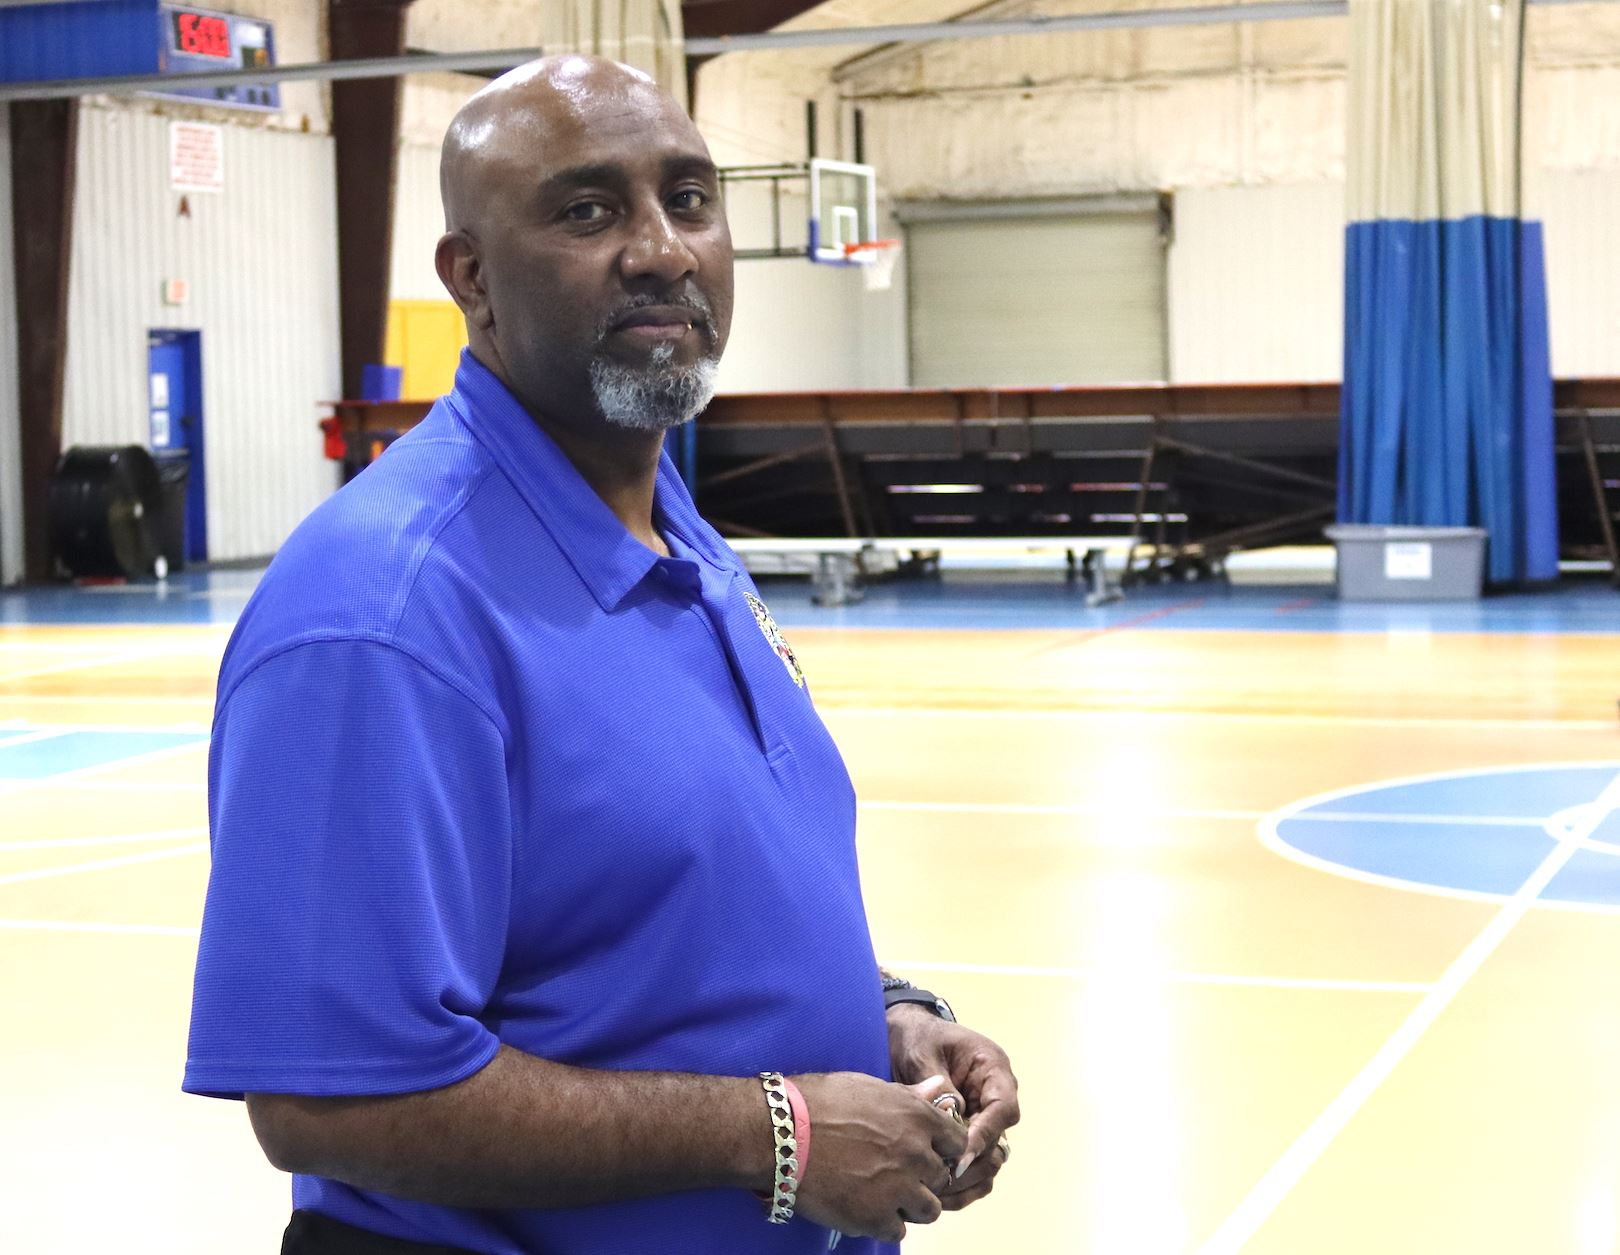 Crestview recreation programs supervisor George Hillsman is pictured in the Twin Hills Park gym.